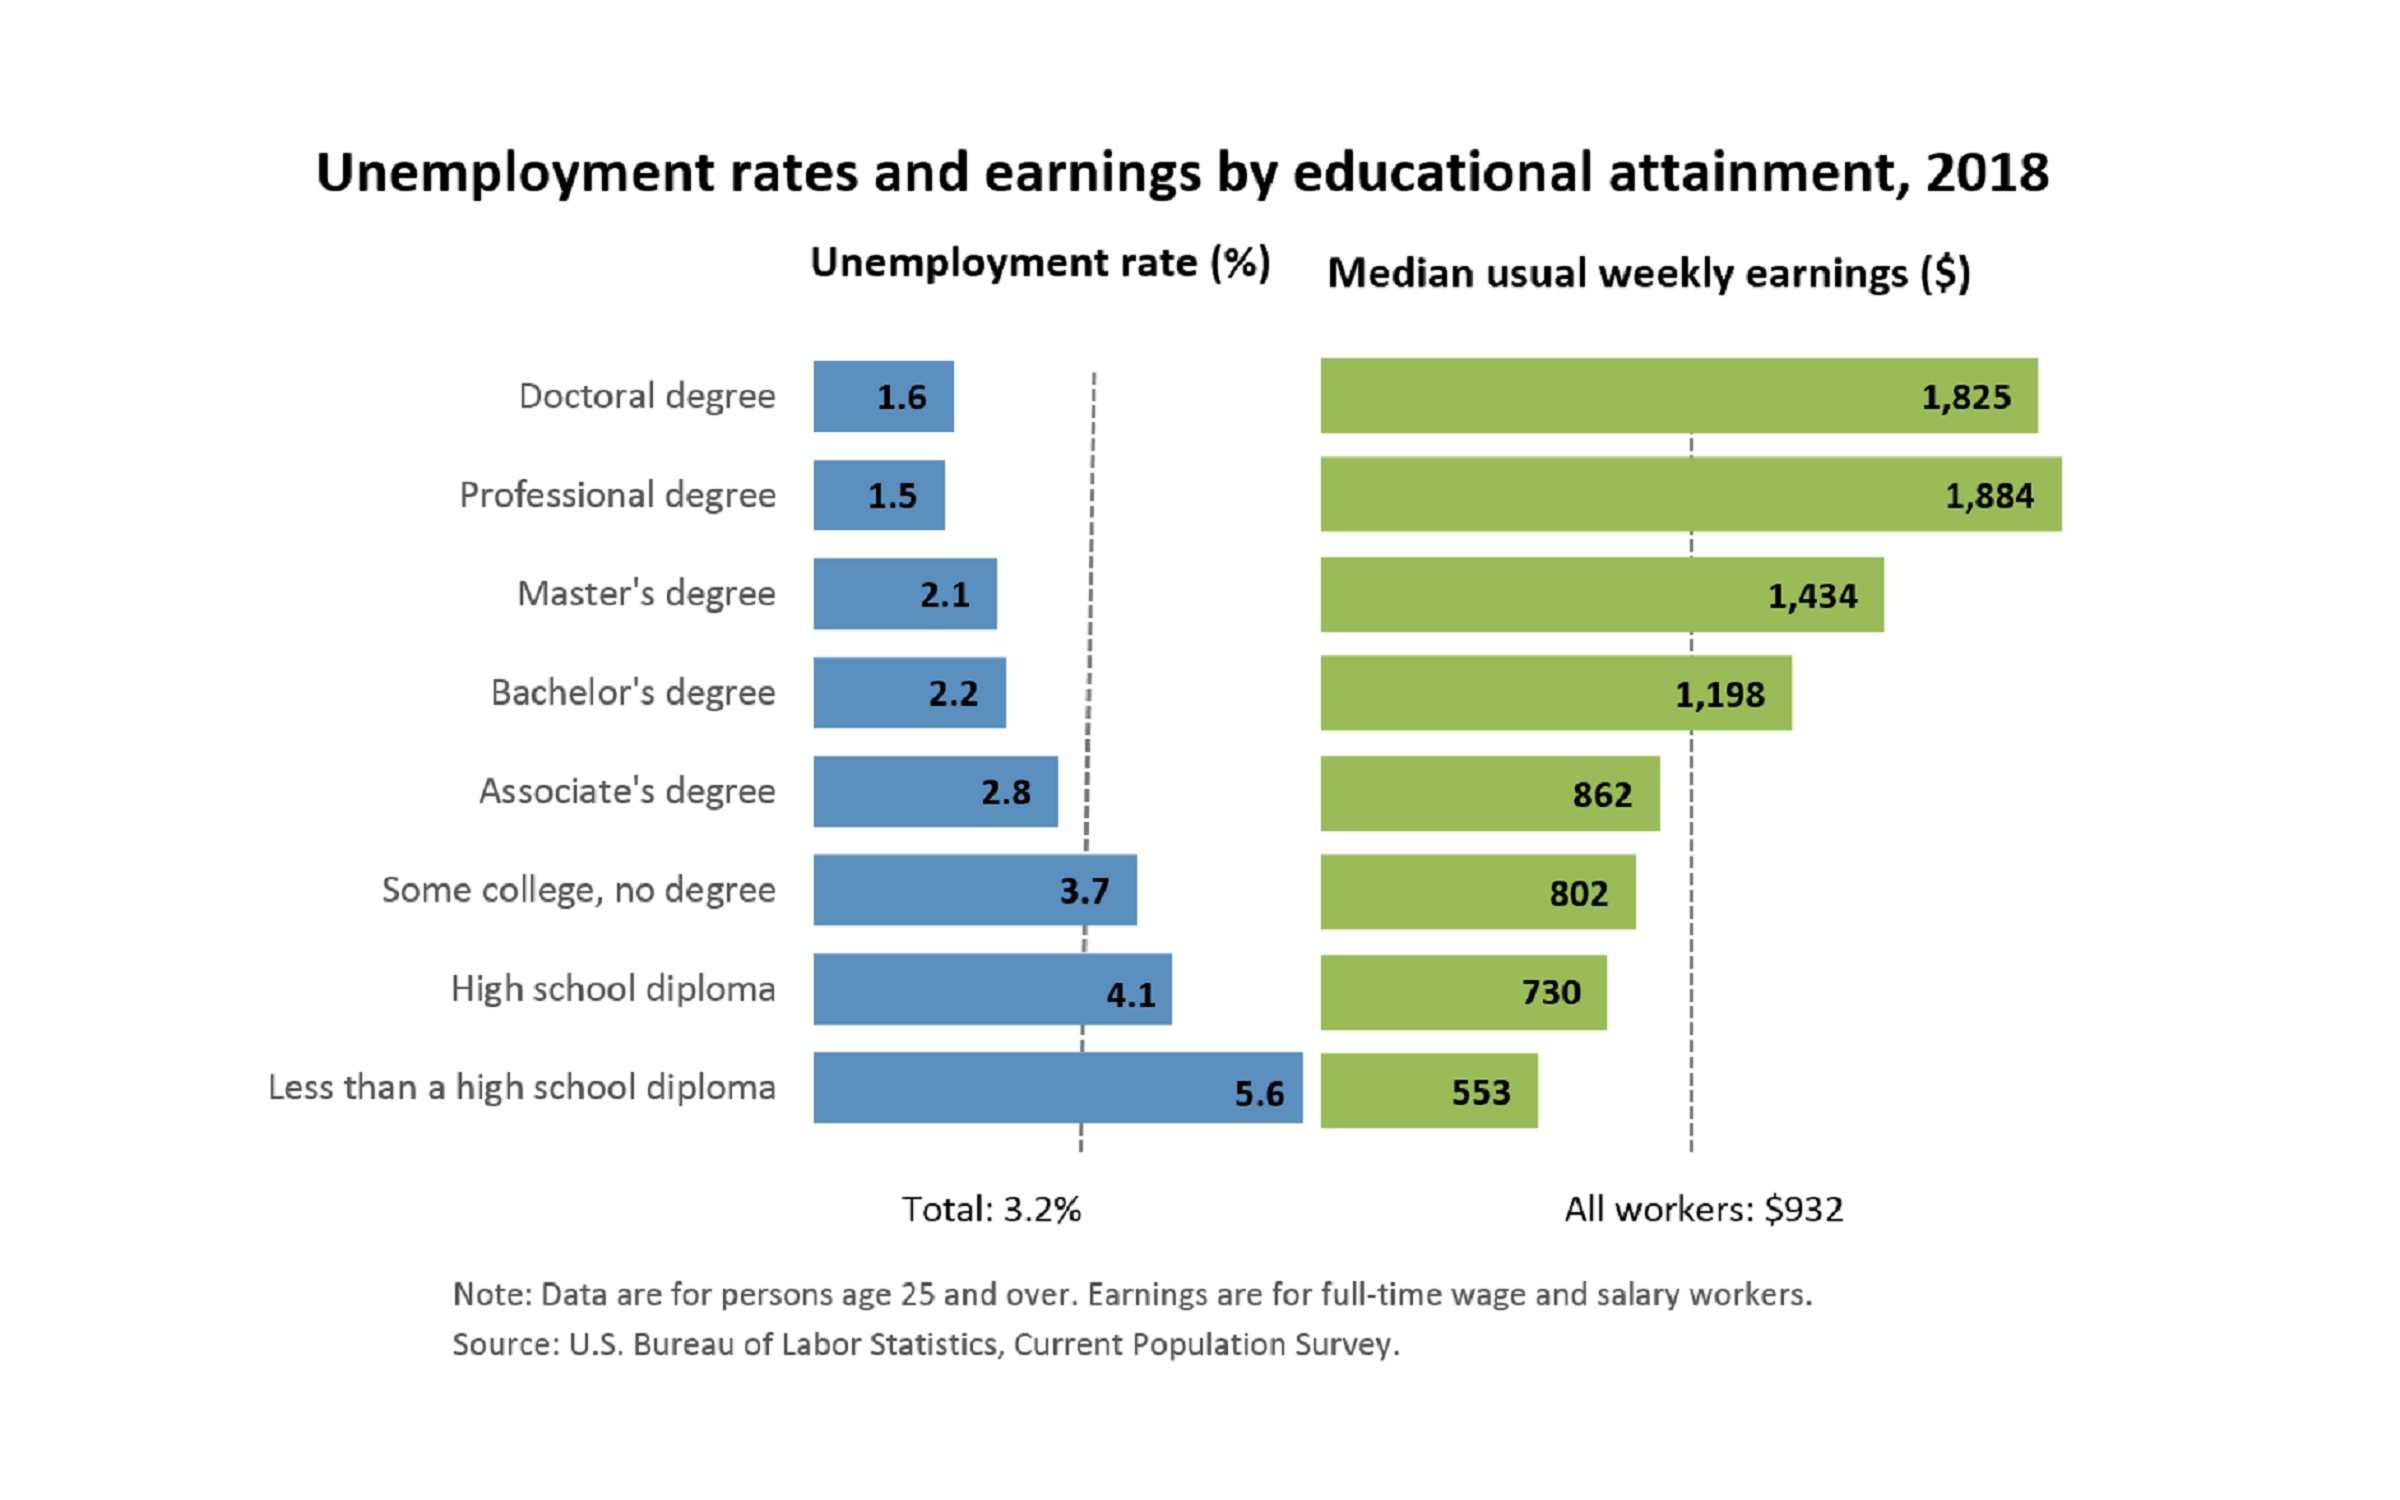 Comparative line graph showing the unemployment rate and earnings by educational attainment for 2018. The average unemployment rate is 3.2% where people with associate degrees or higher are under the unemployment rate. The median weekly earnings is $932 where people with bachelors degrees or higher make more than the median earnings.